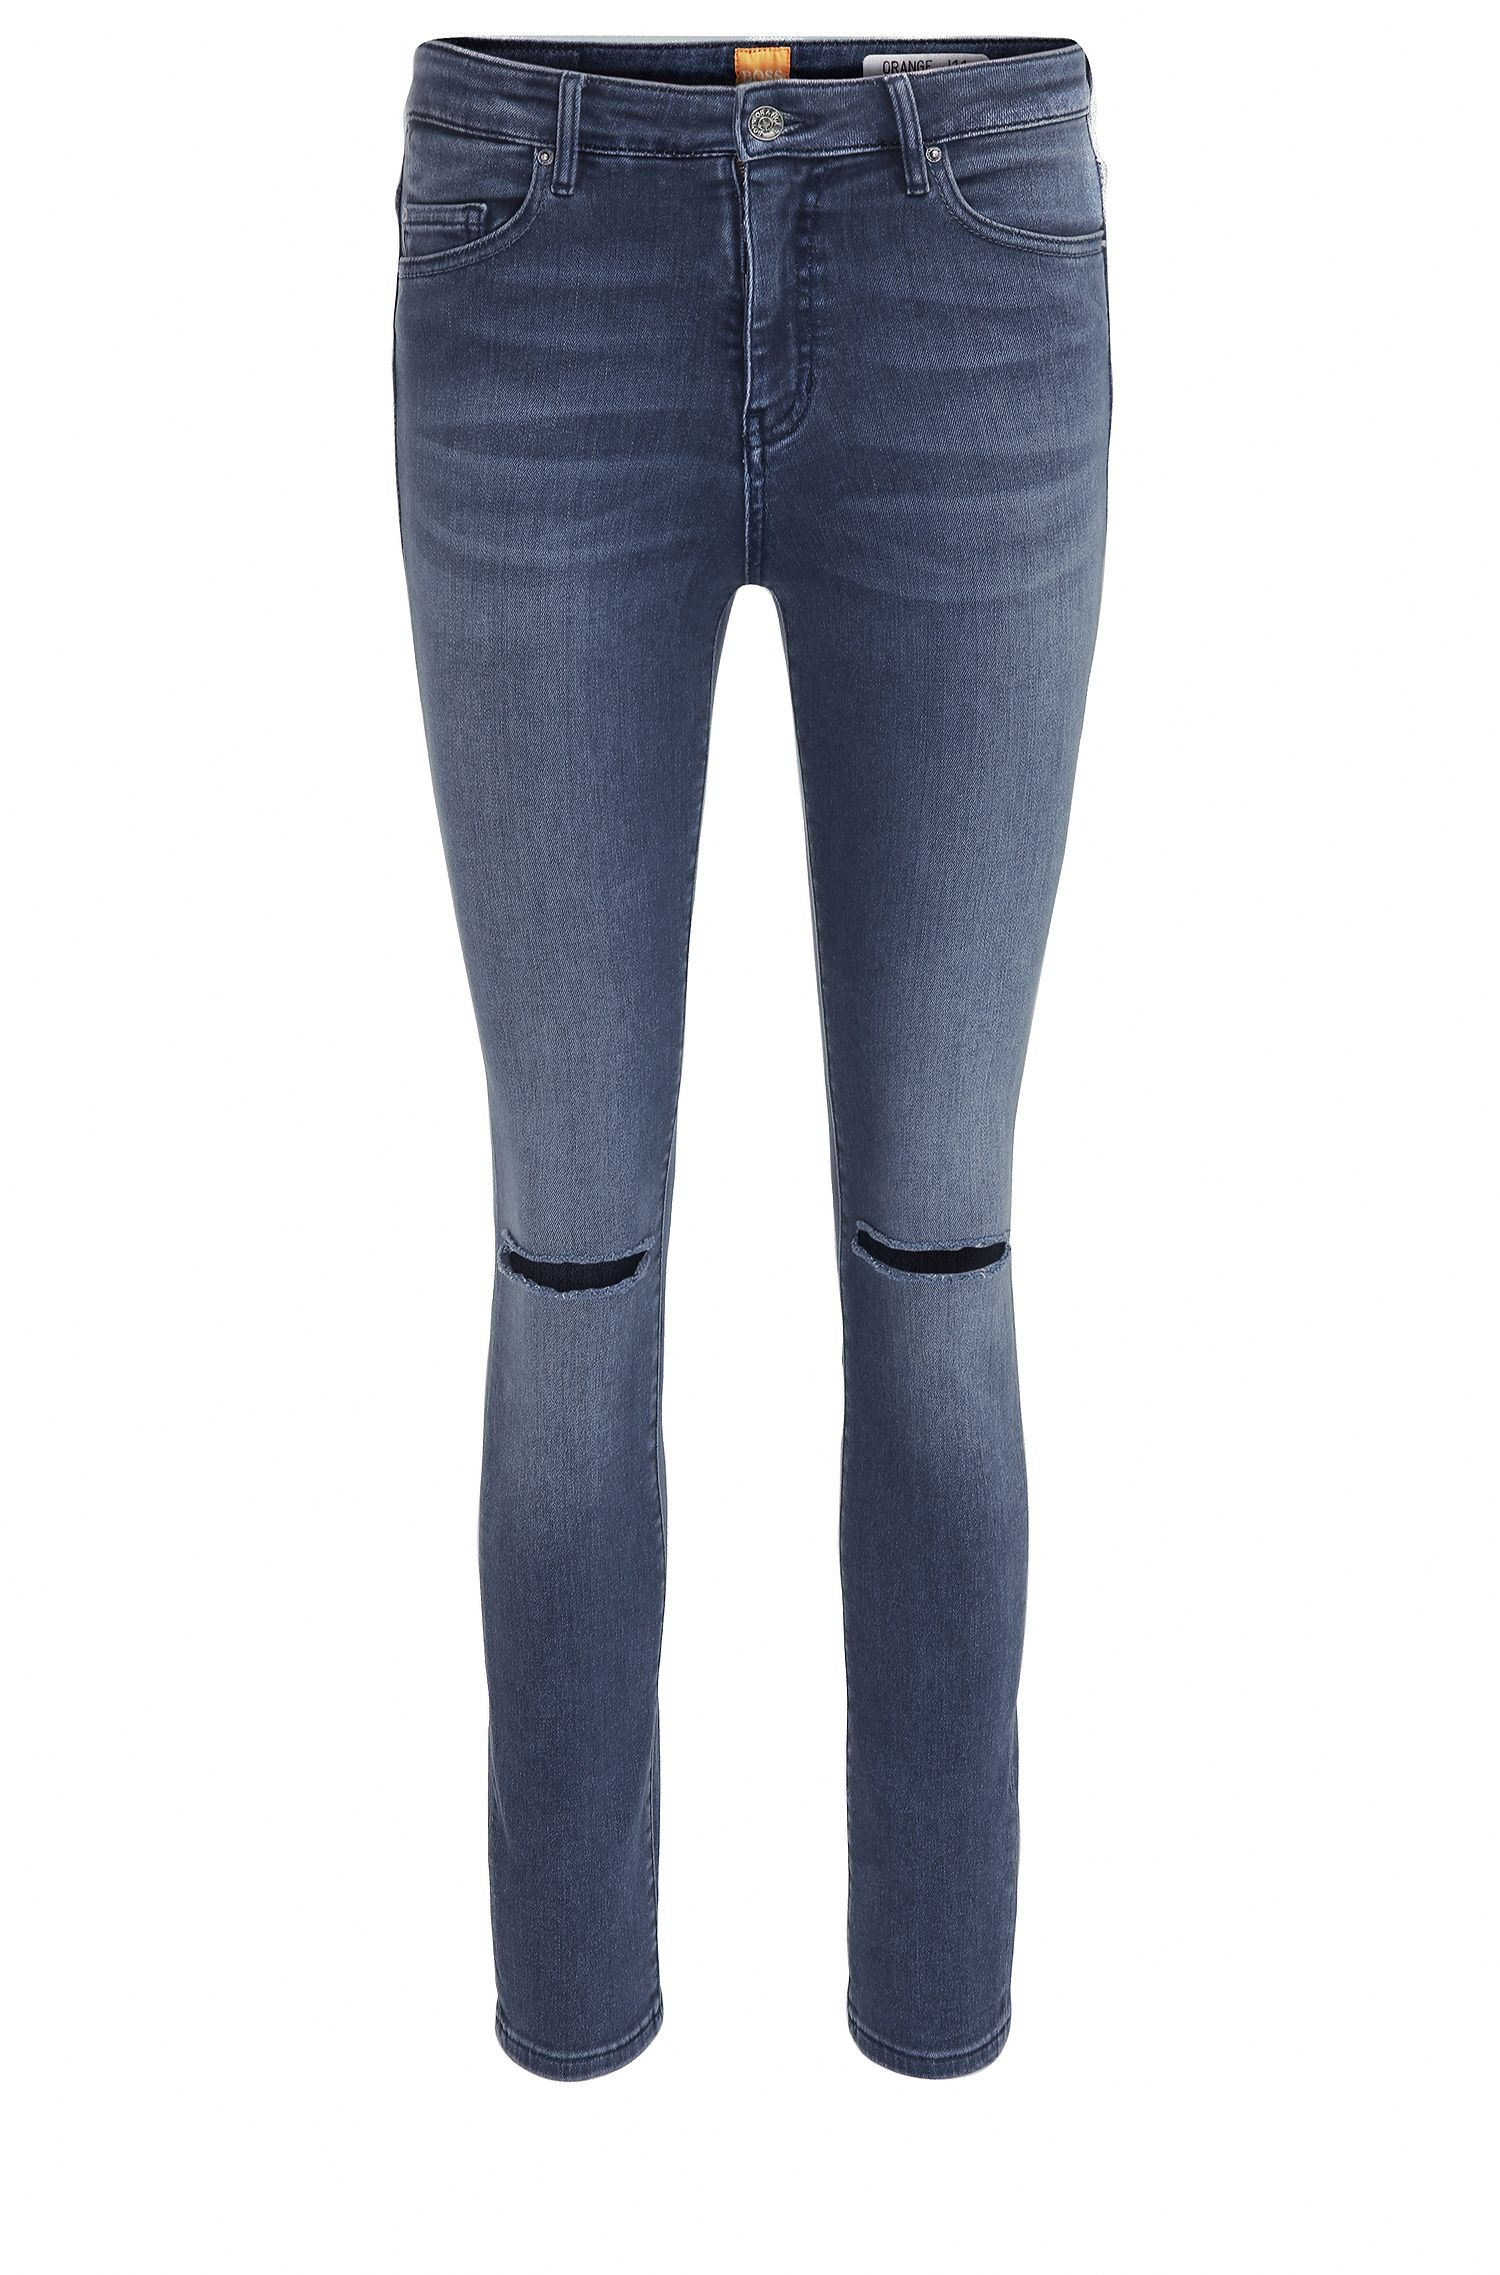 Vaqueros tobilleros skinny fit en denim con elástico power-stretch y aspecto usado